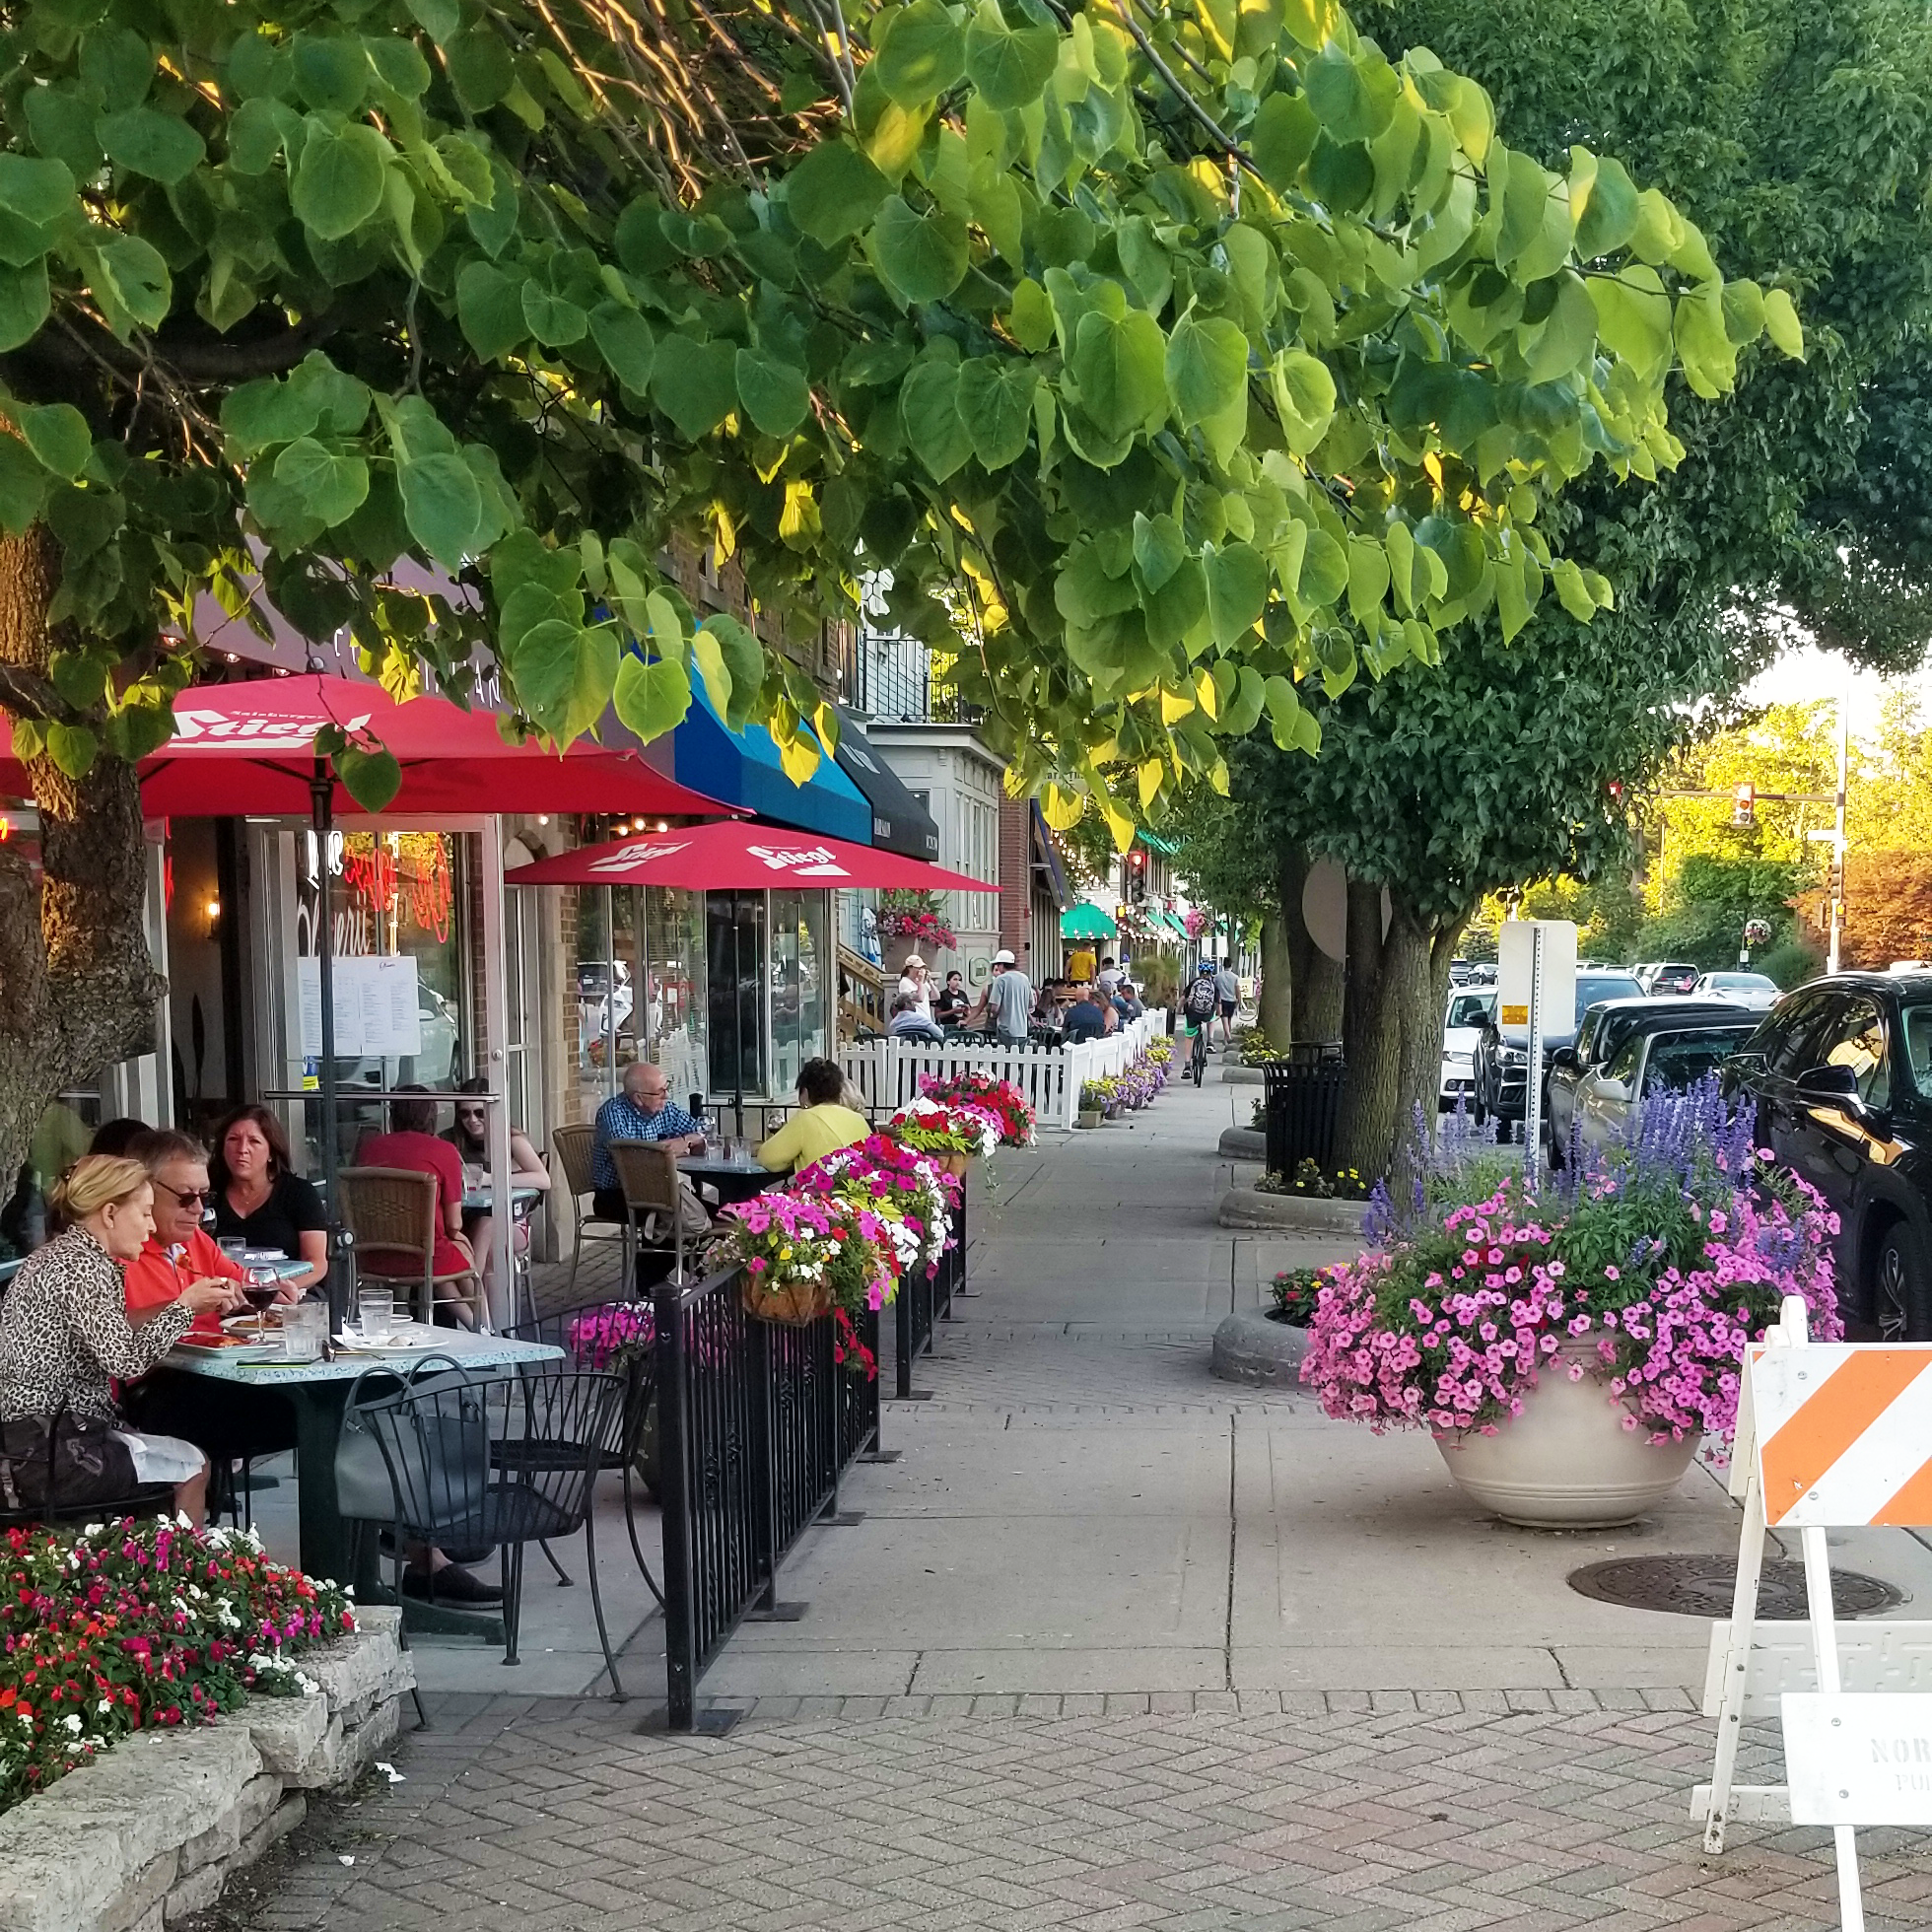 People enjoying outdoor dining in downtown Northbrook